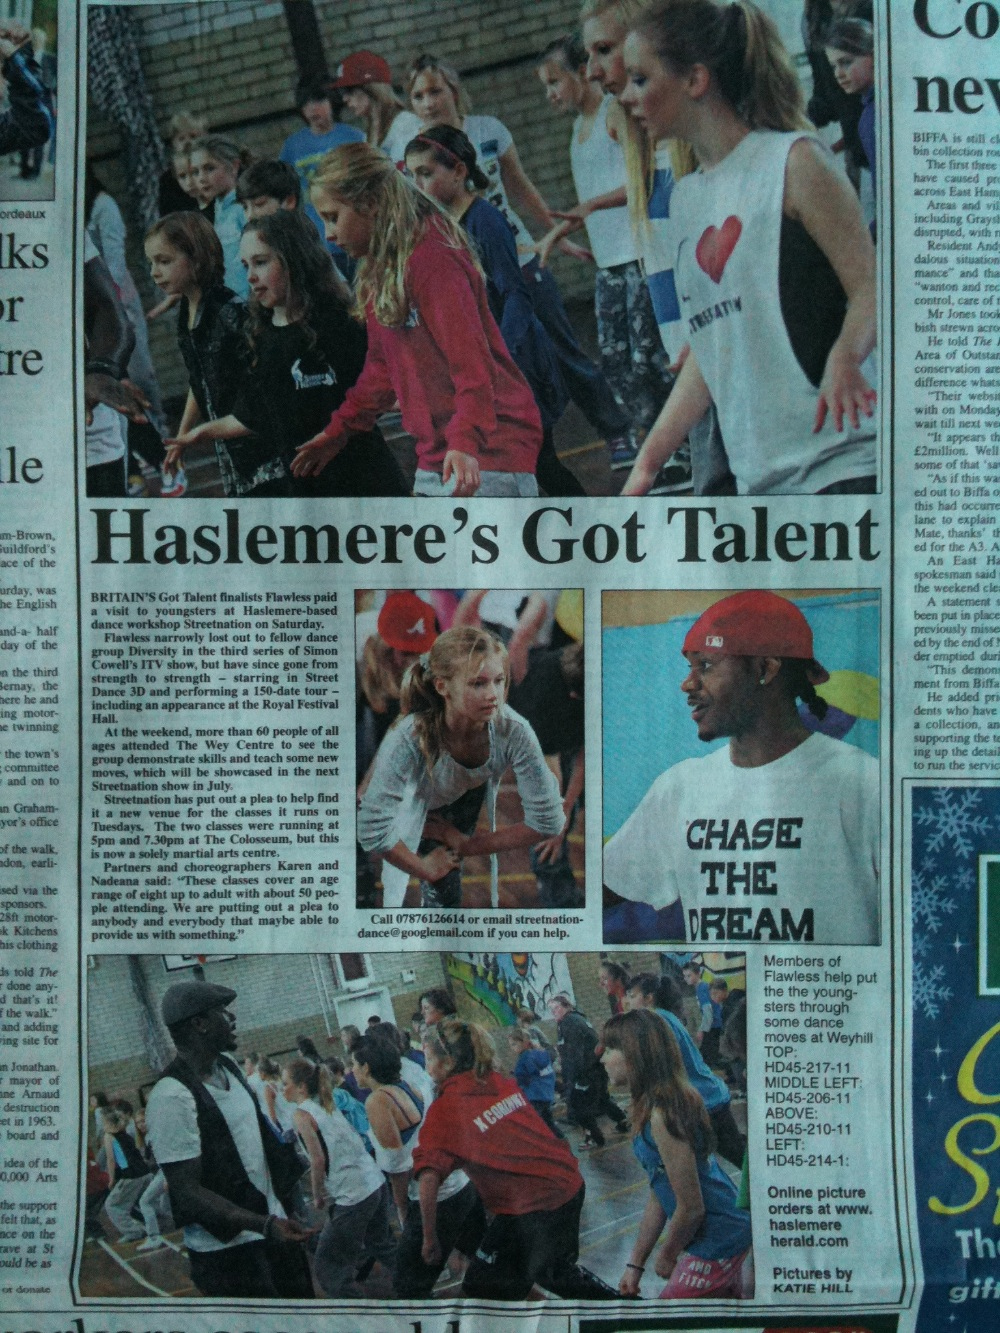 _Flawless Workshop_ Haslemere Herald Write up (Nov 2011)